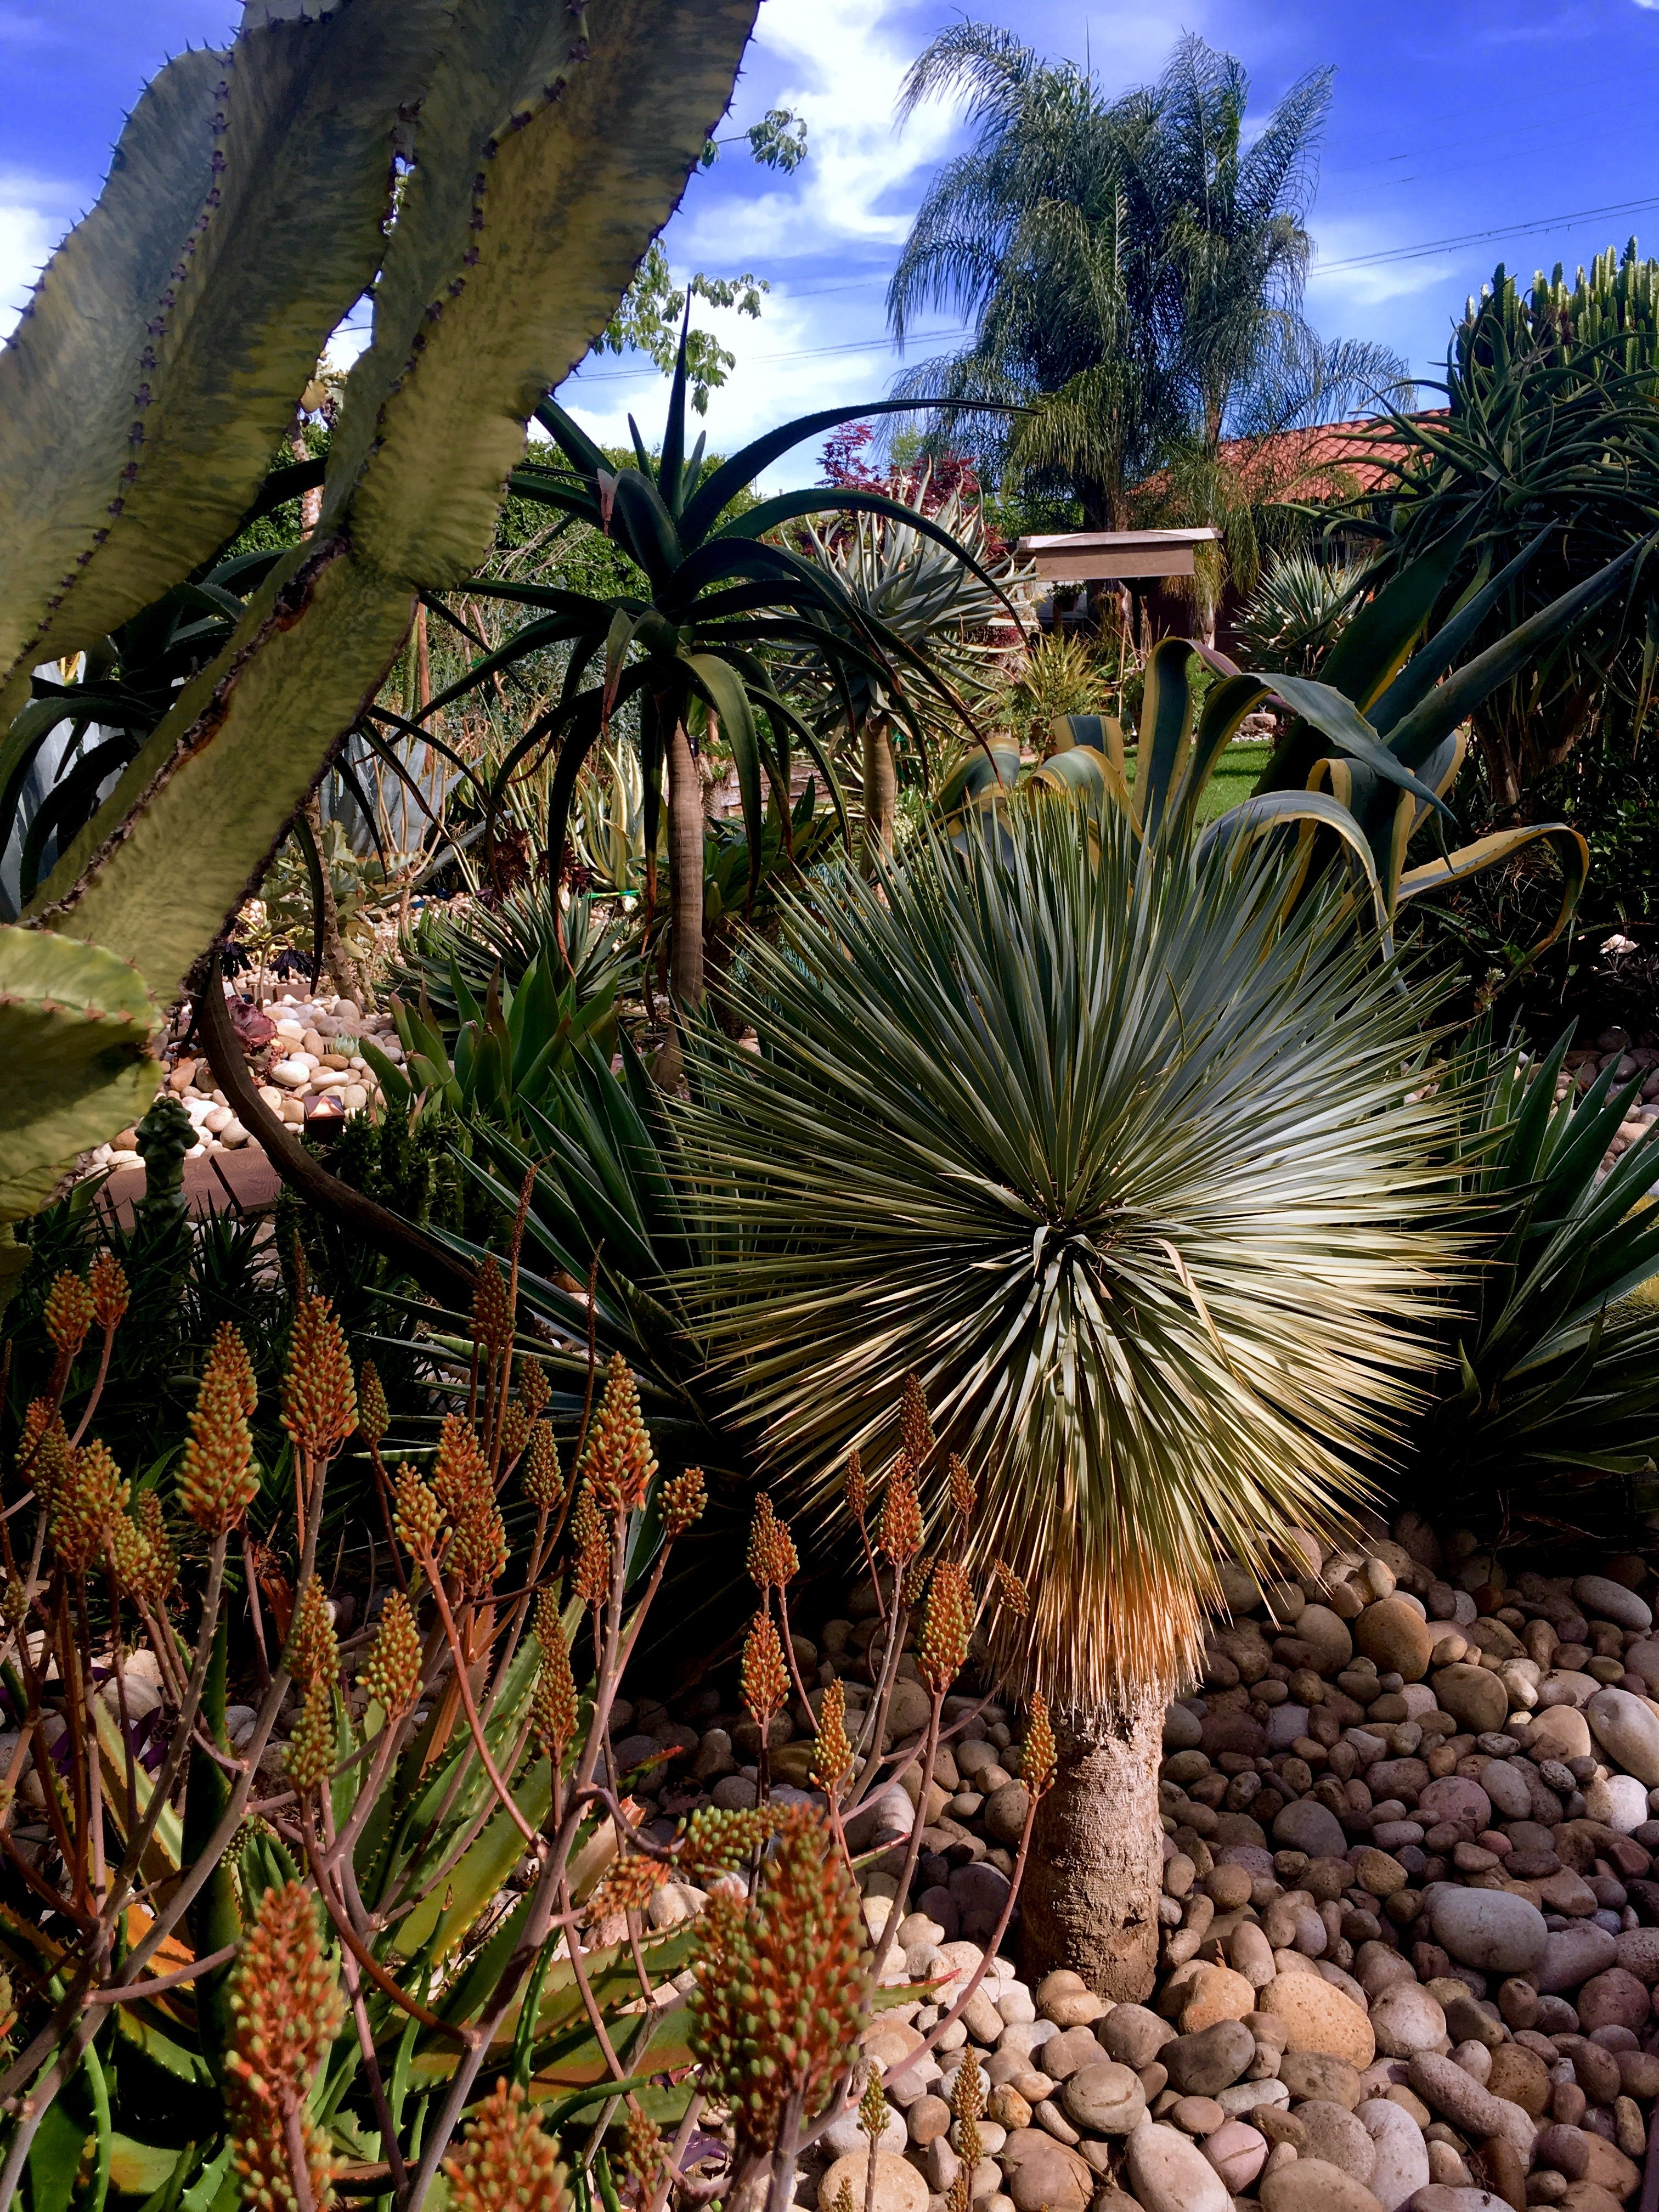 Buy blue dune lyme grass in nw arkansas - Yucca Rostrata Beaked Yucca Blue Yucca Now At Xersia Garden California